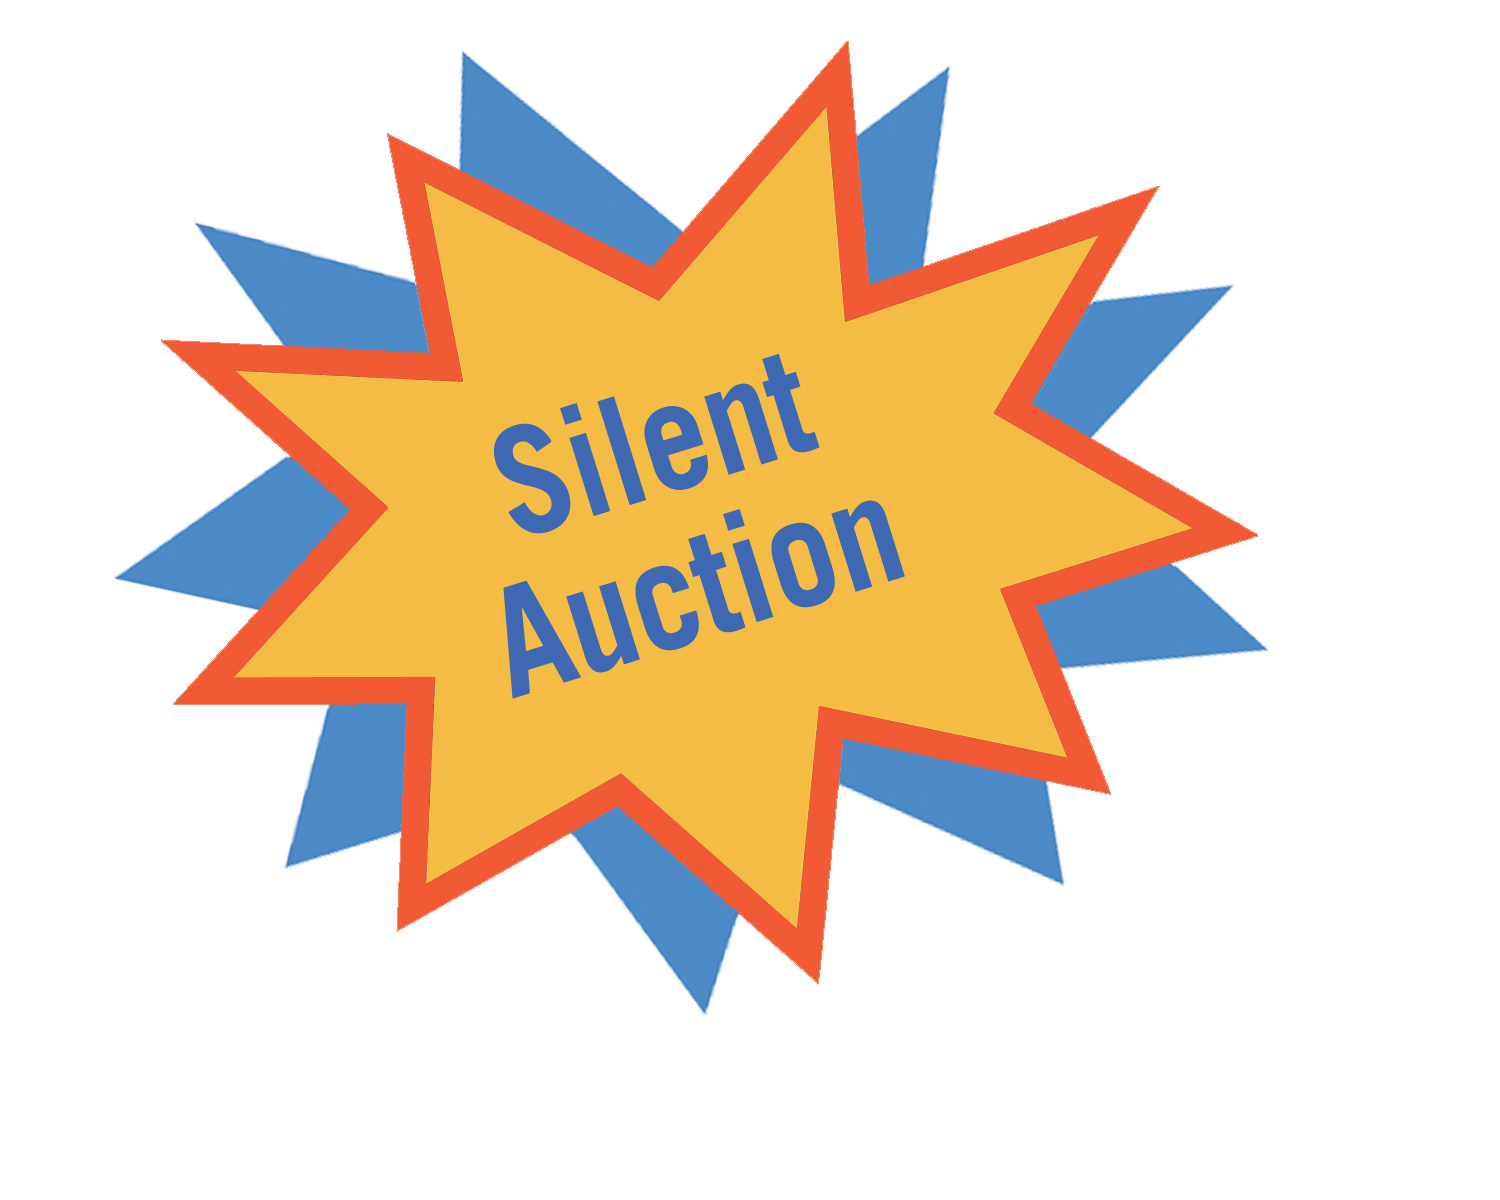 Free clipart for teachers and school auctions banner library stock Free Silent Auction Cliparts, Download Free Clip Art, Free Clip Art ... banner library stock